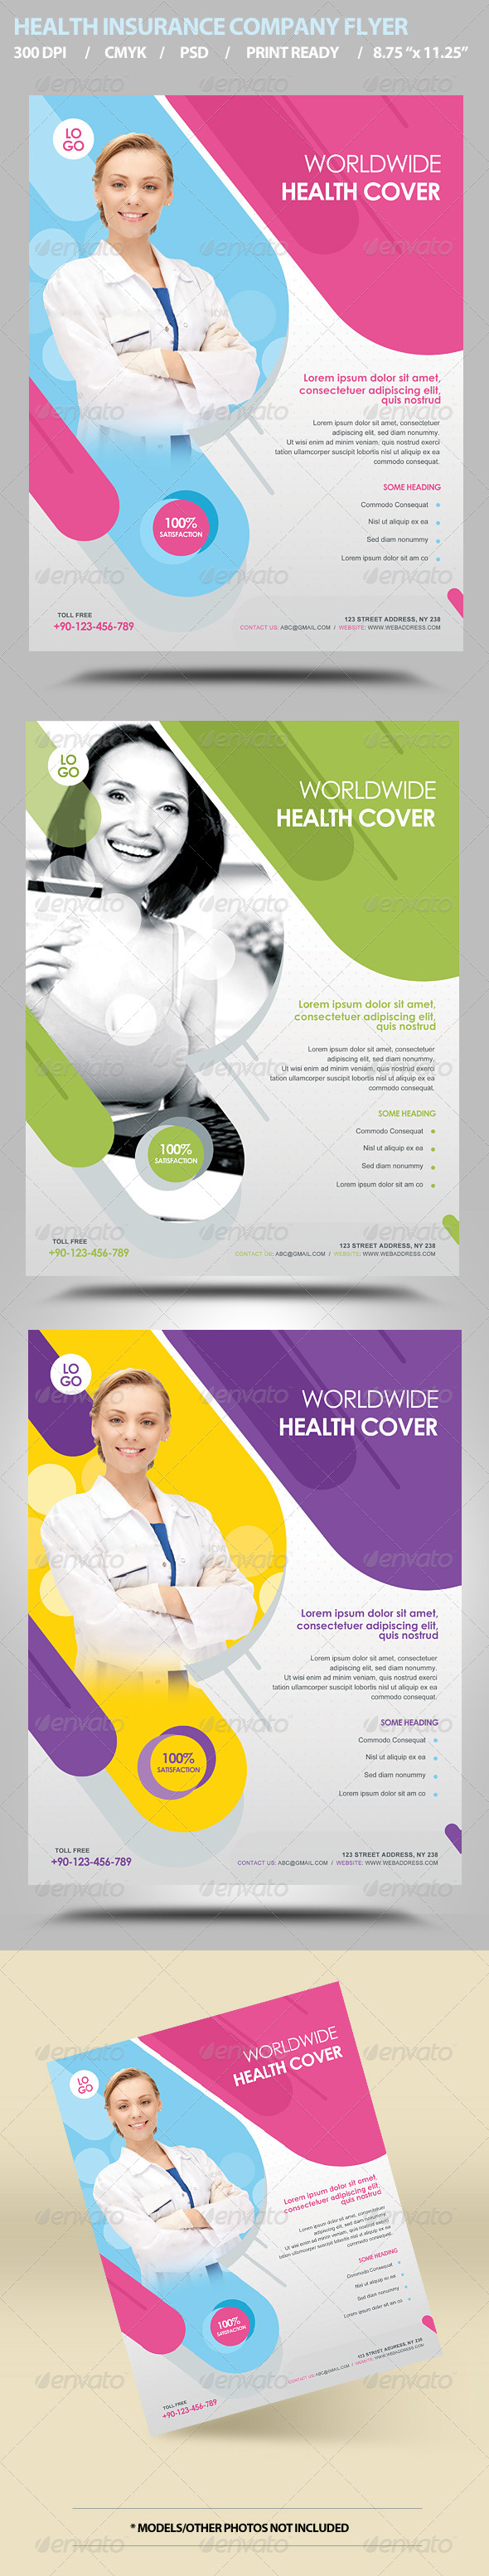 GraphicRiver Health Insurance Flyer Template 5971612